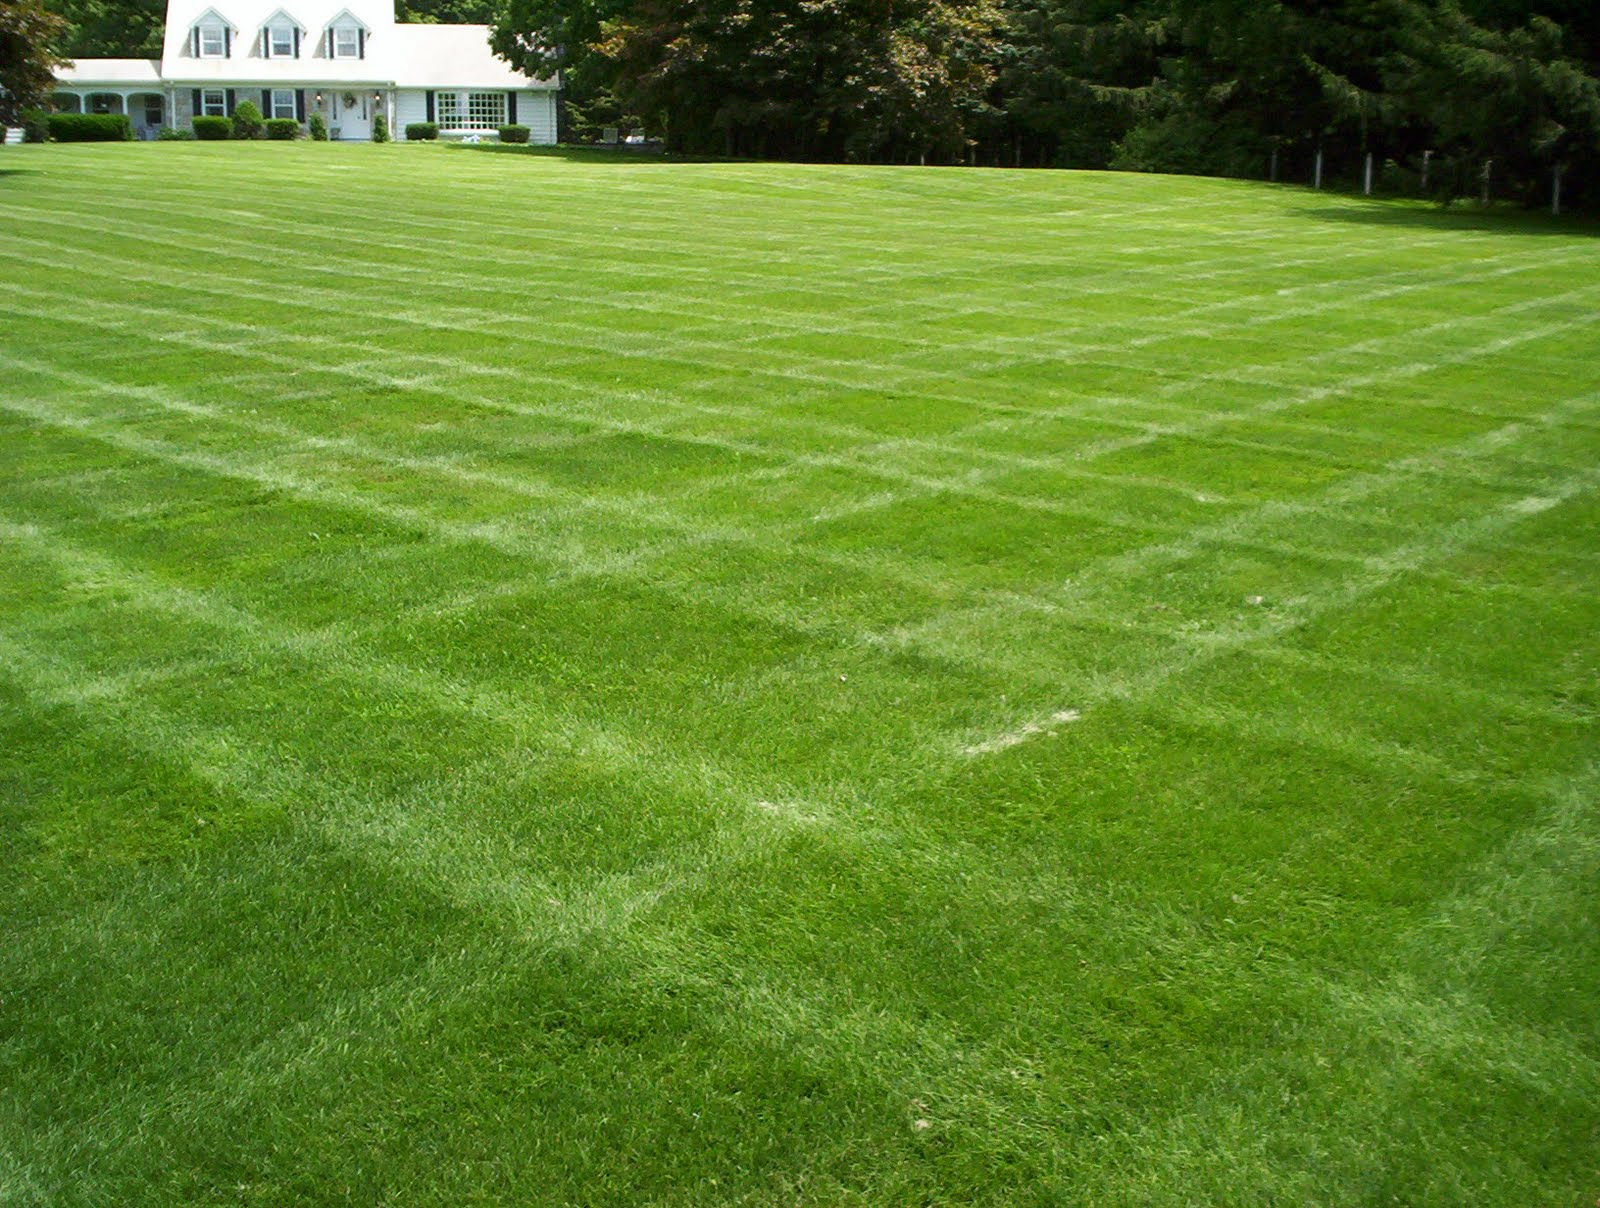 Dutch touch blog stay informed selecting grass for your for Short landscape grasses